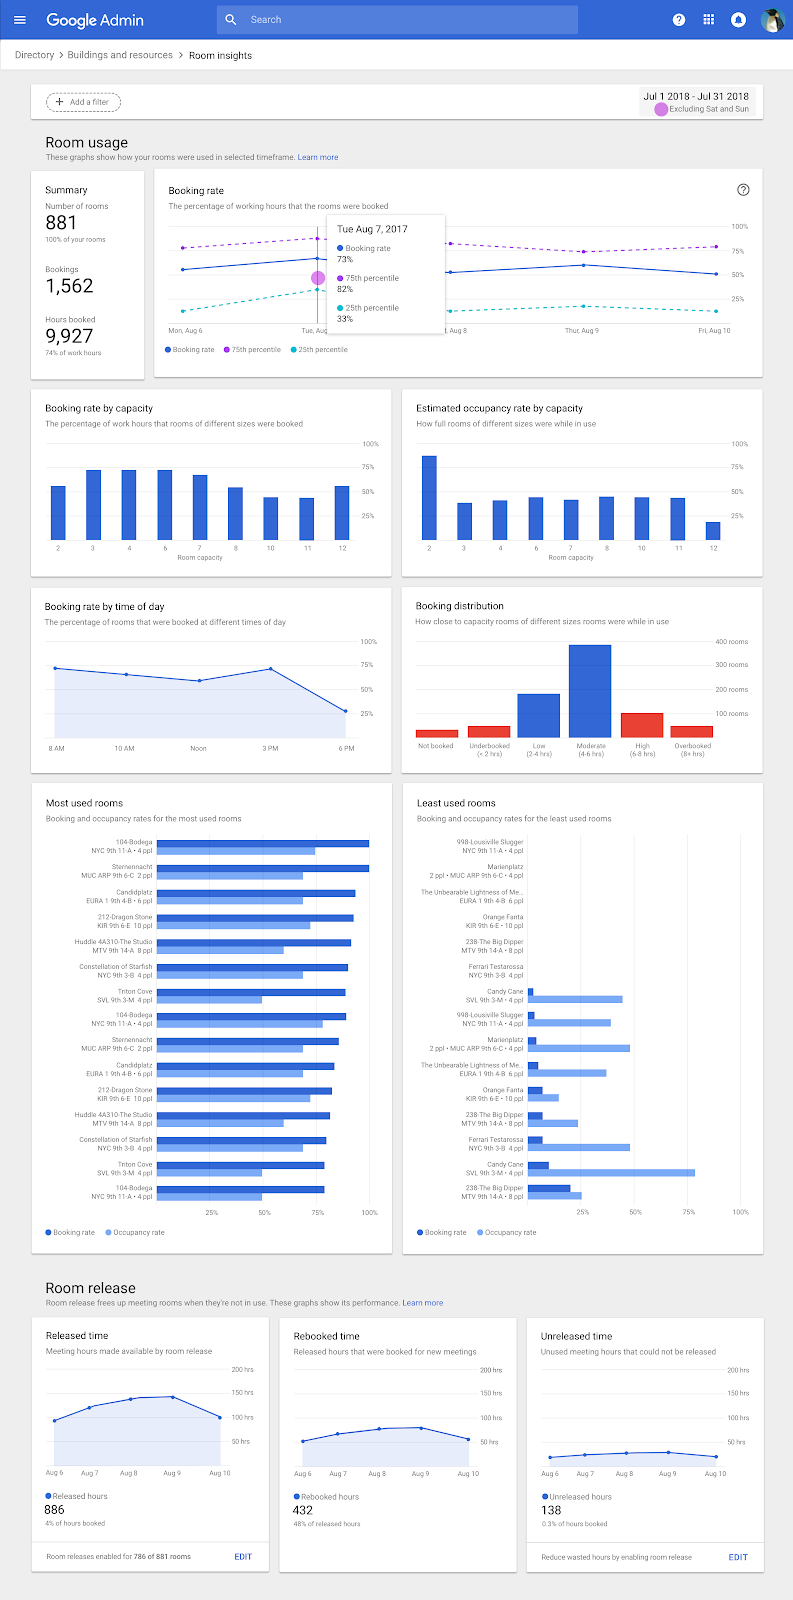 G Suite Updates Blog: Manage meeting rooms efficiently with